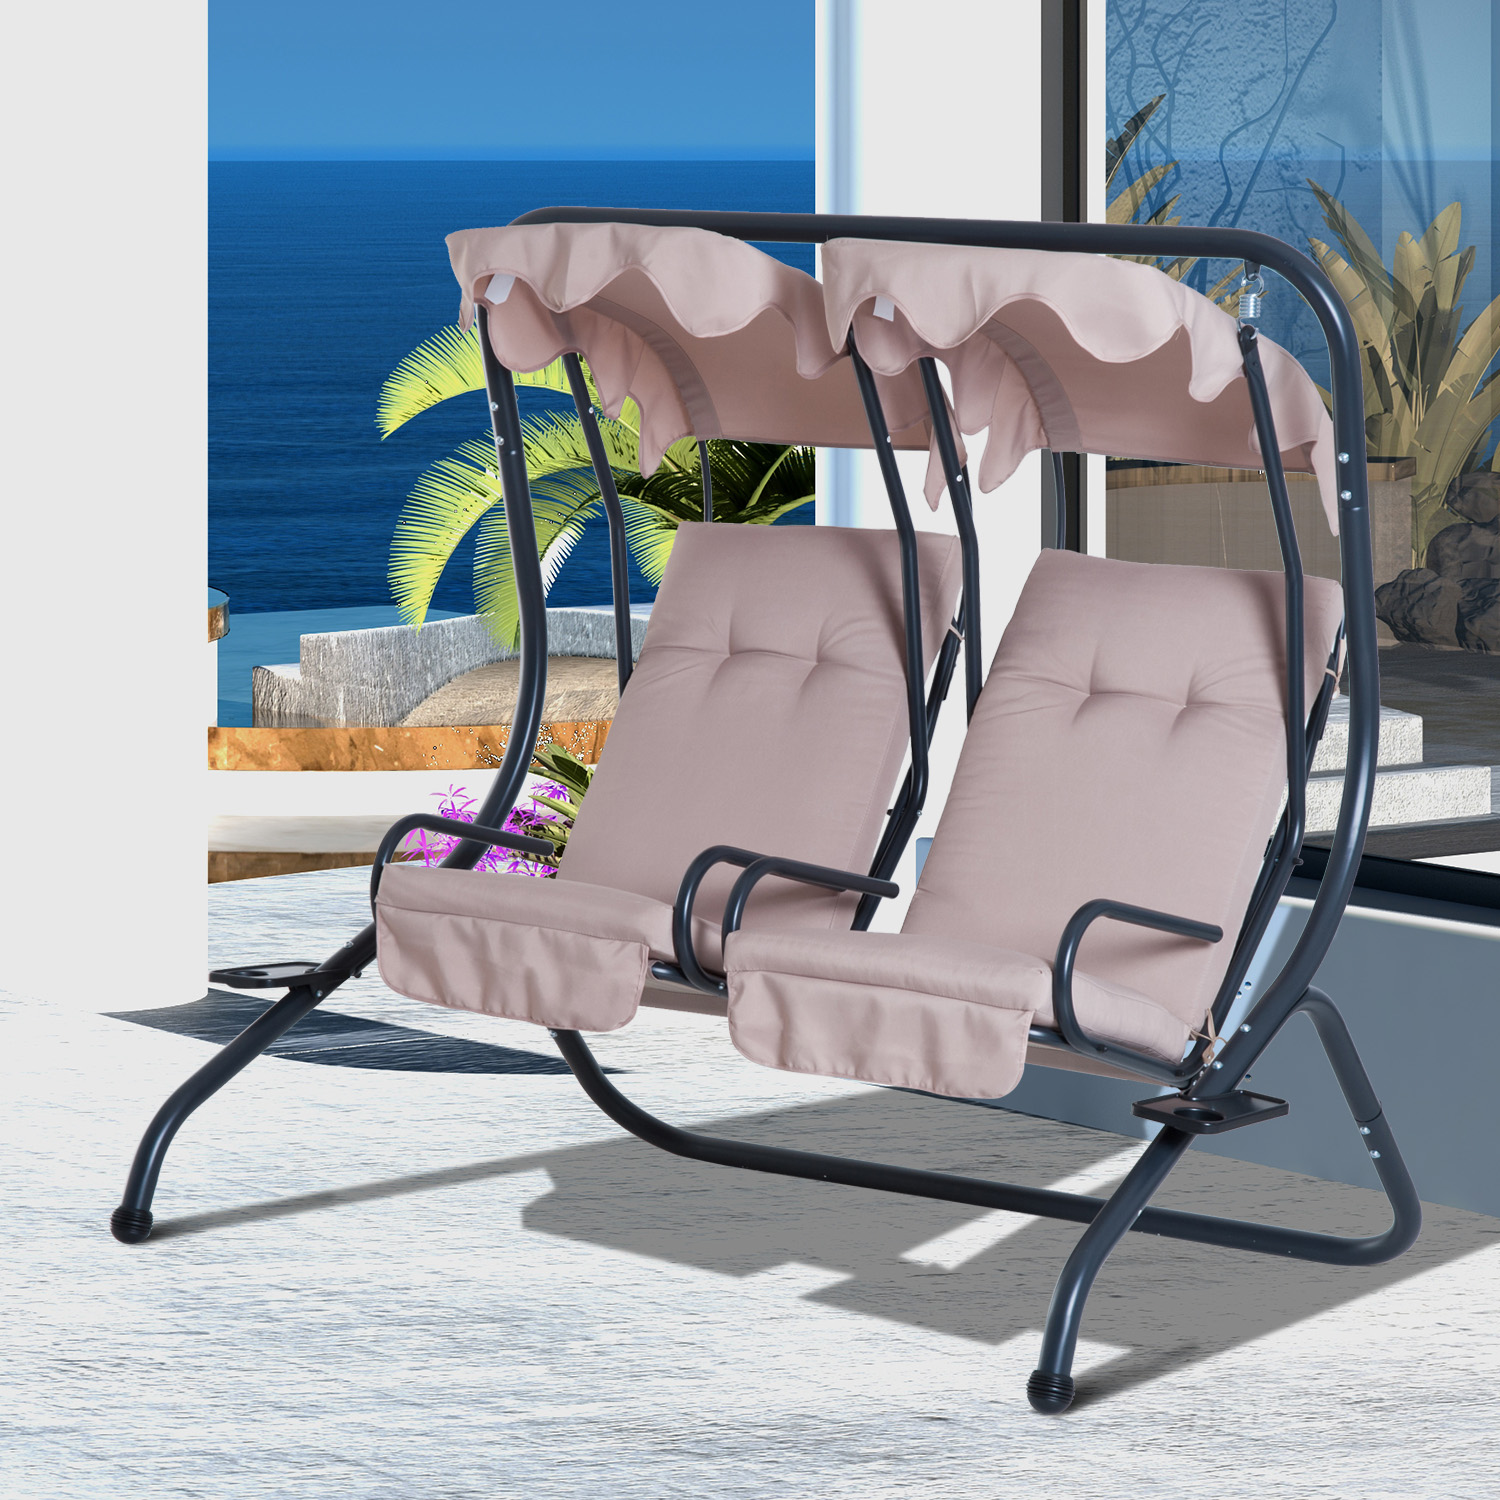 hanging patio swing chair big man recliner outdoor 2 person steel seat with canopy details about porch deck